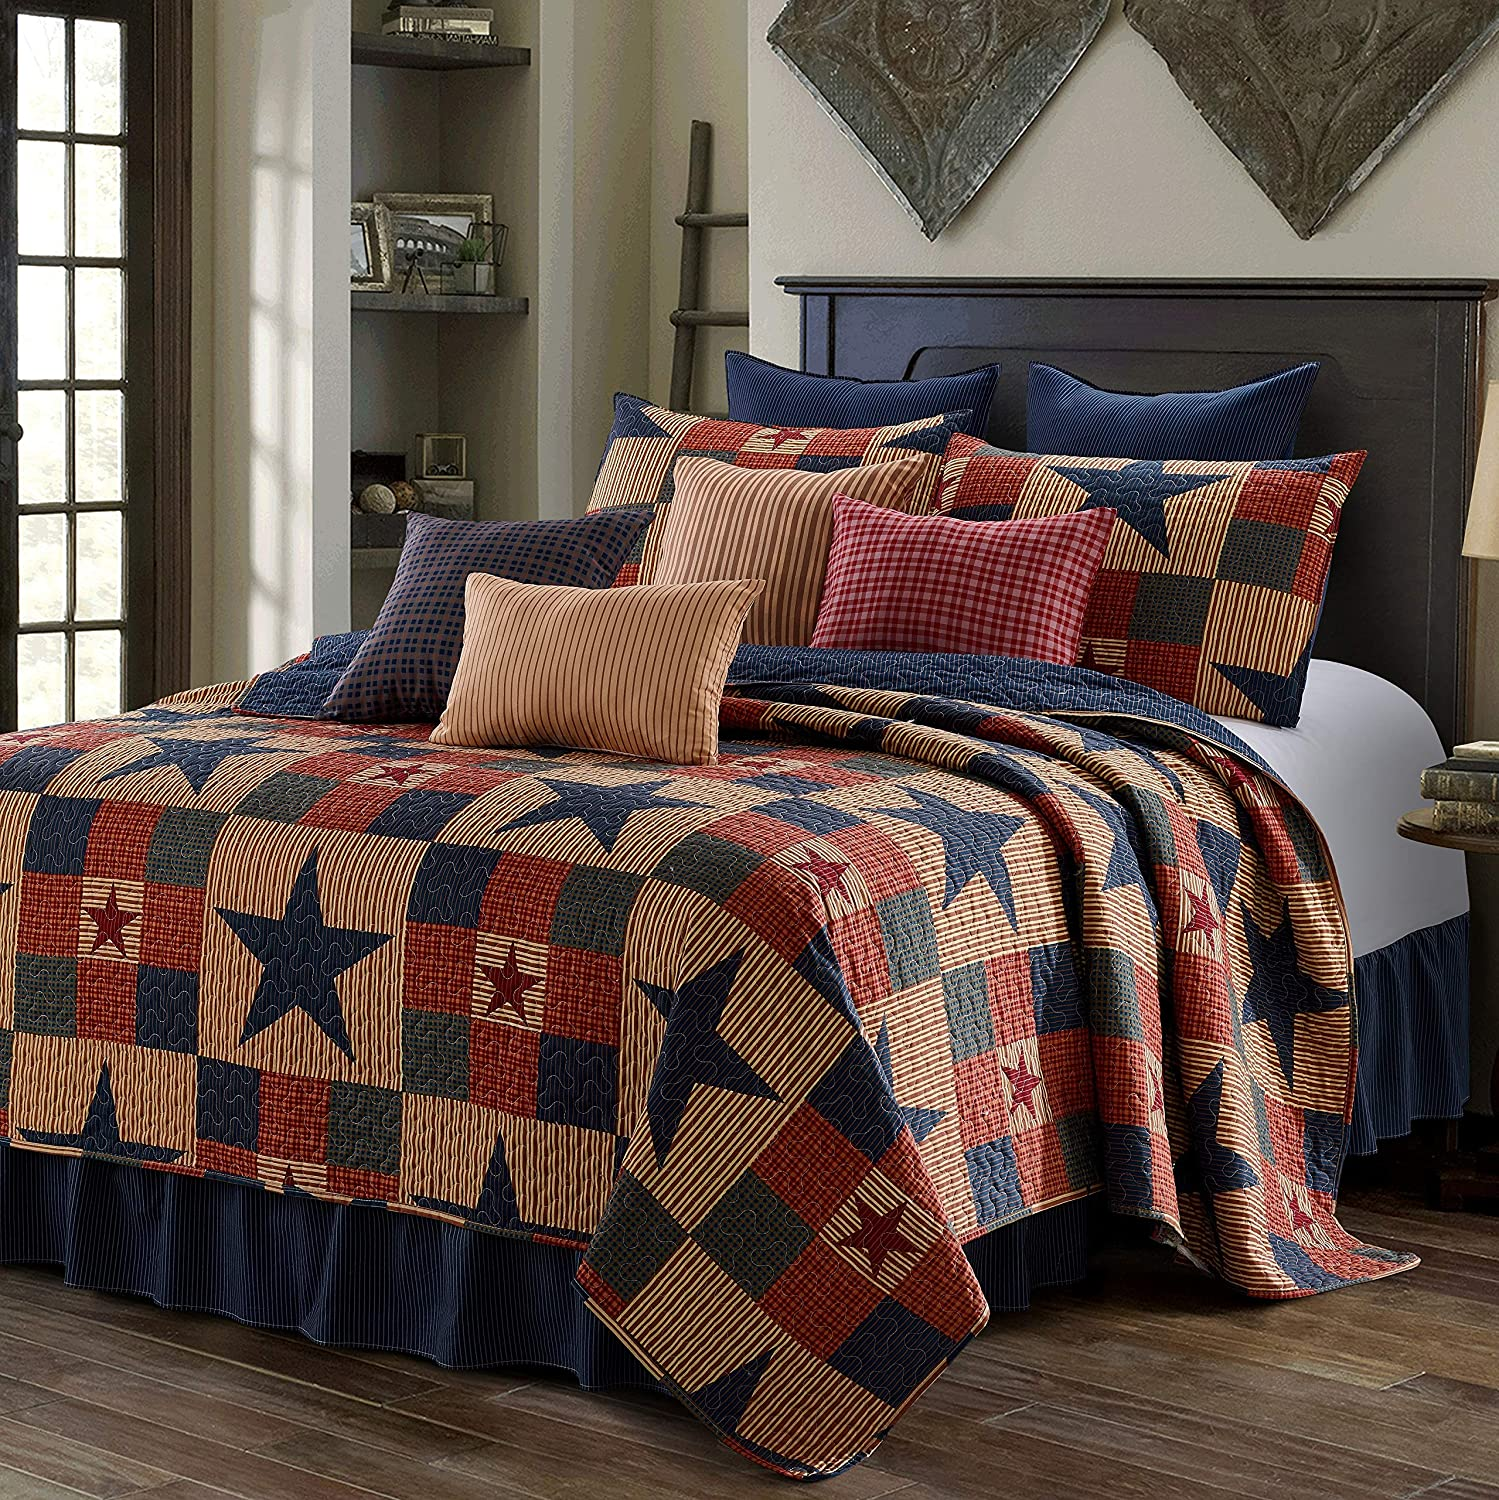 Virah Bella 3 Piece Mountain Cabin Stars Rustic 3 Piece Quilt and Sham Set (Blue, King)